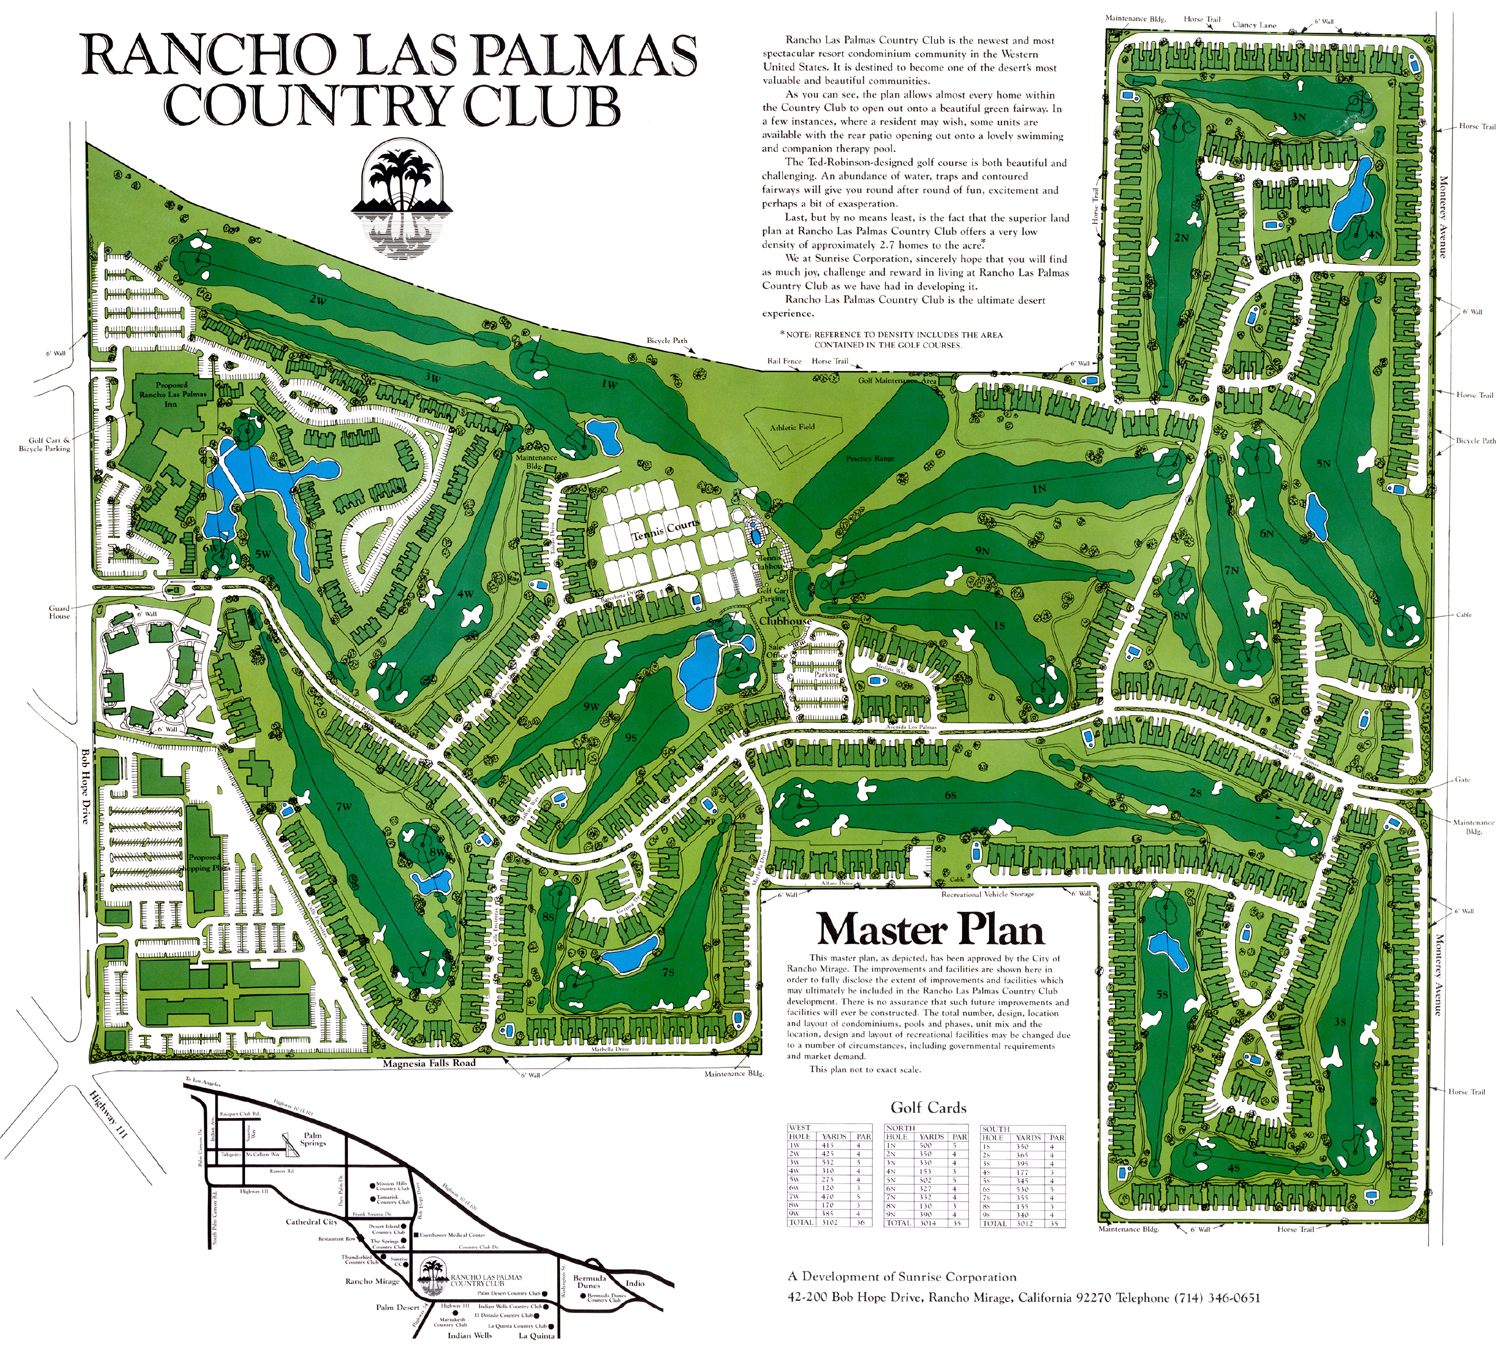 Rancho Las Palmas Country Club Real Estate Private desert country